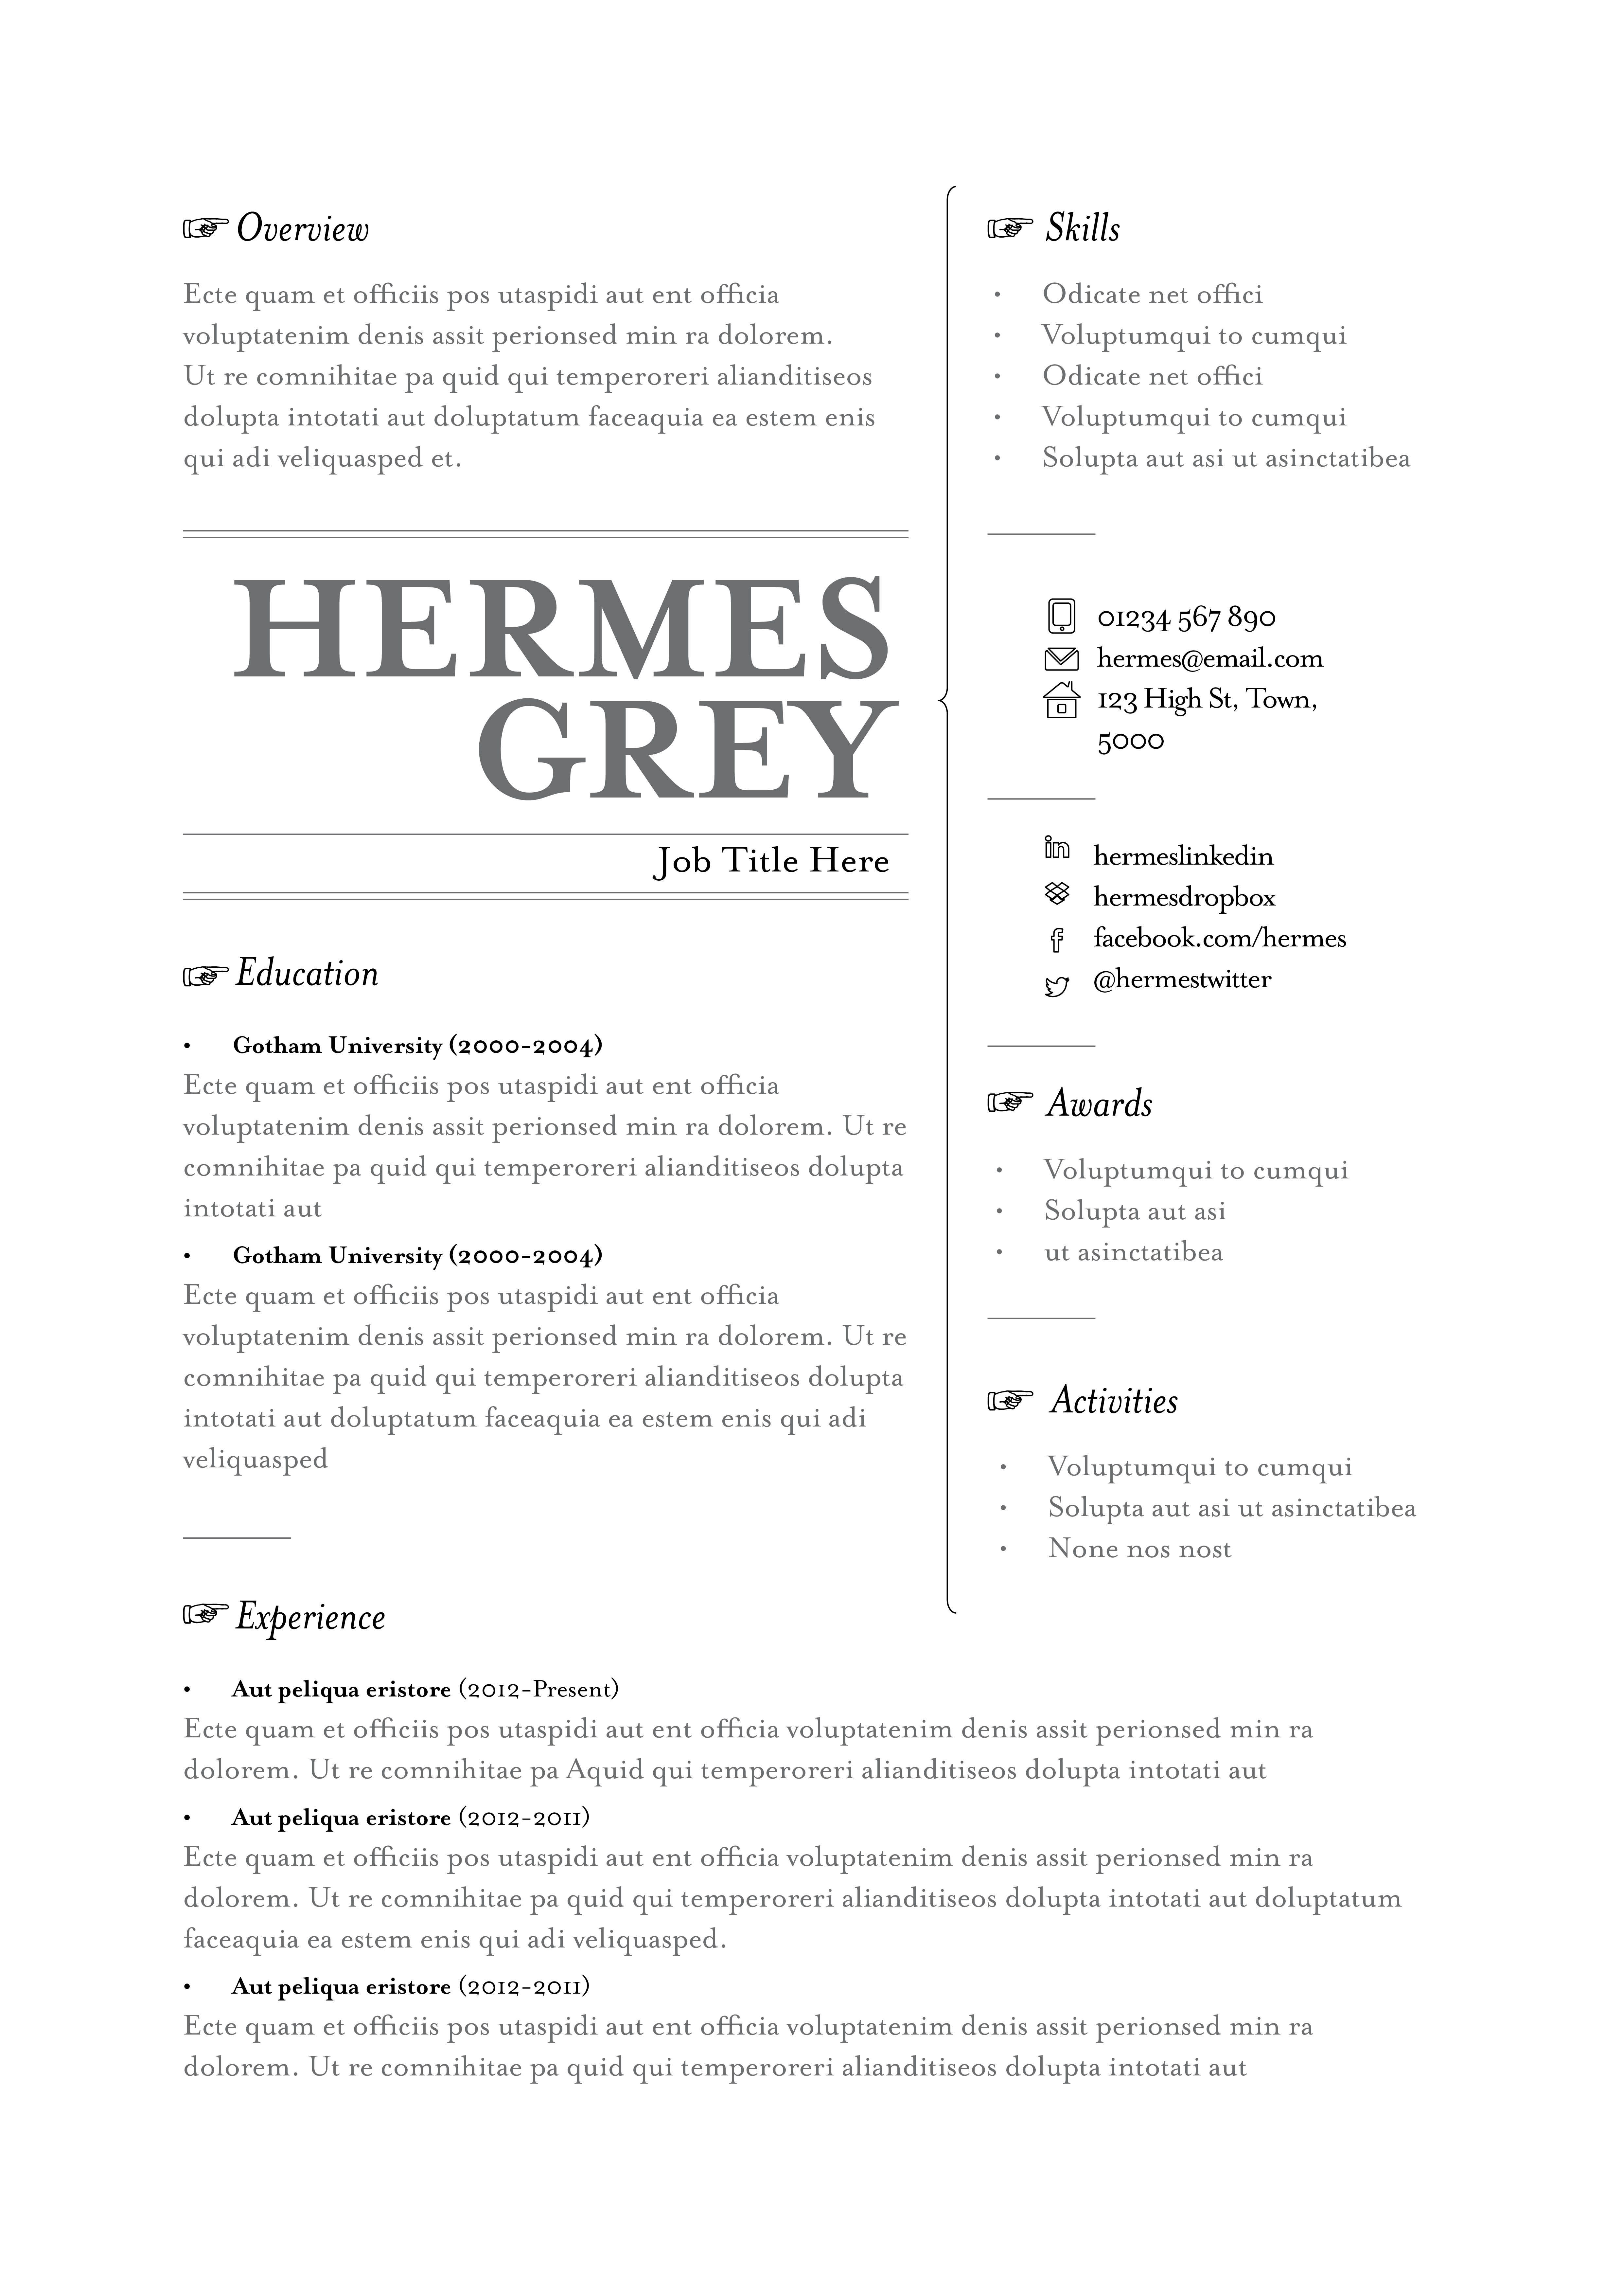 Our Hermes resume template. Available in grey, black and